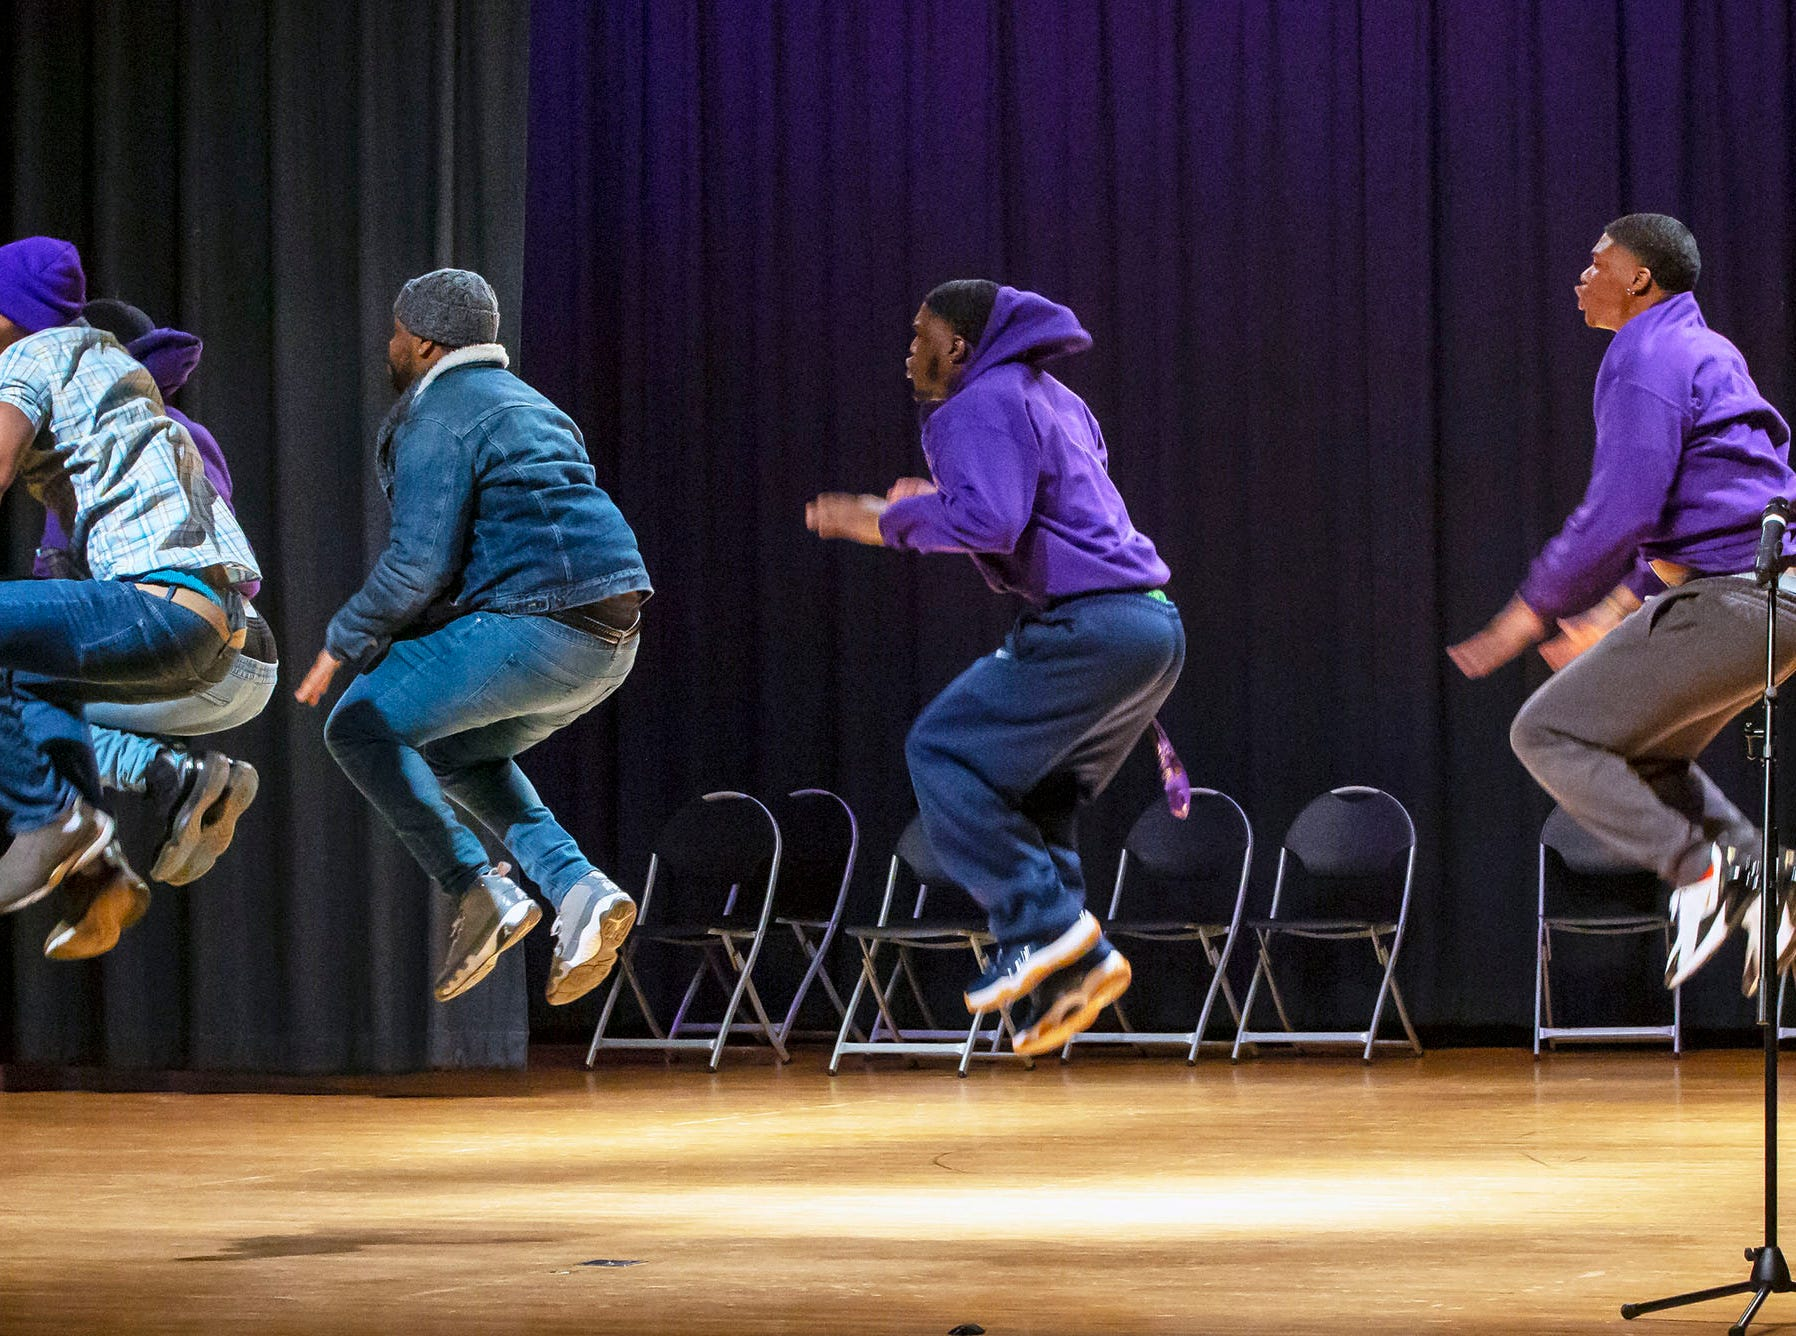 Members of the Omeha Psi Phi fraternity at MTSU perform at the African-American Cultural Celebration held at Patterson Park Community Center.